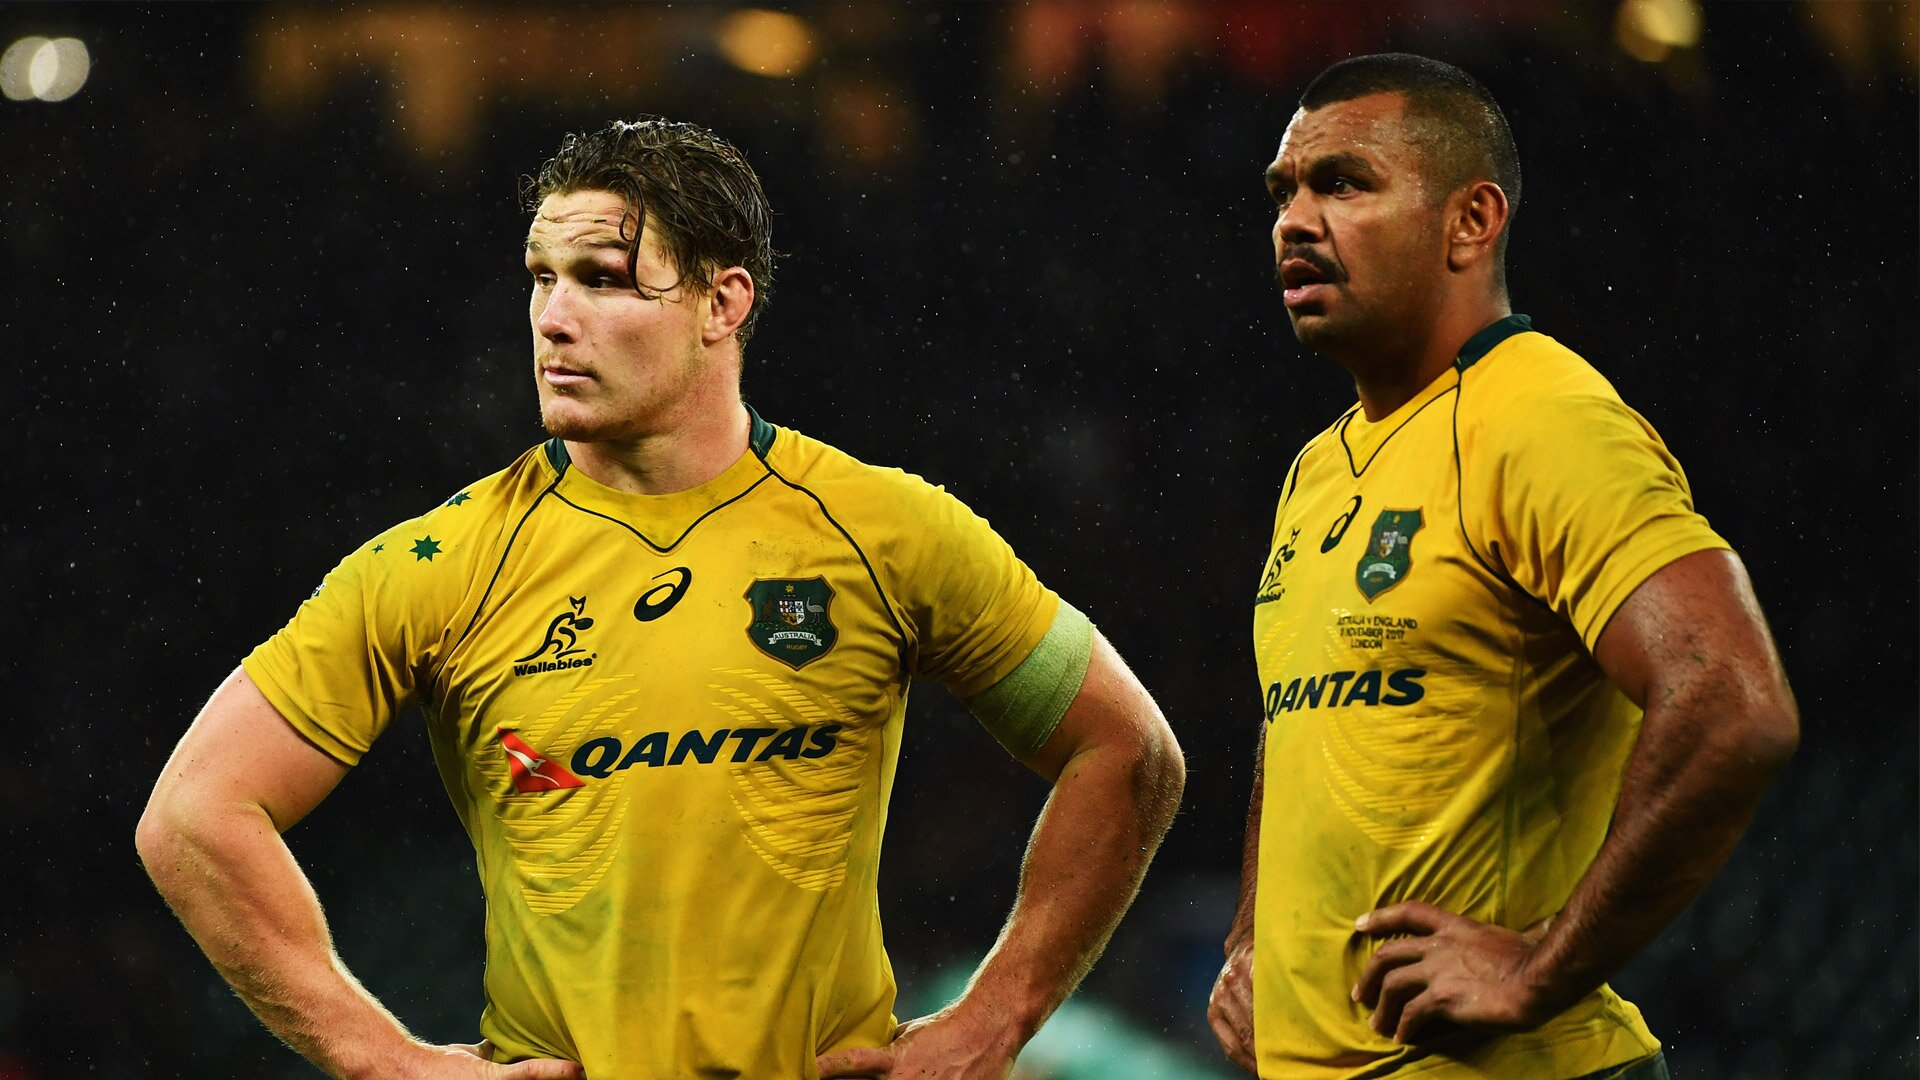 Reports - Waratahs centurion left out of Wallabies group